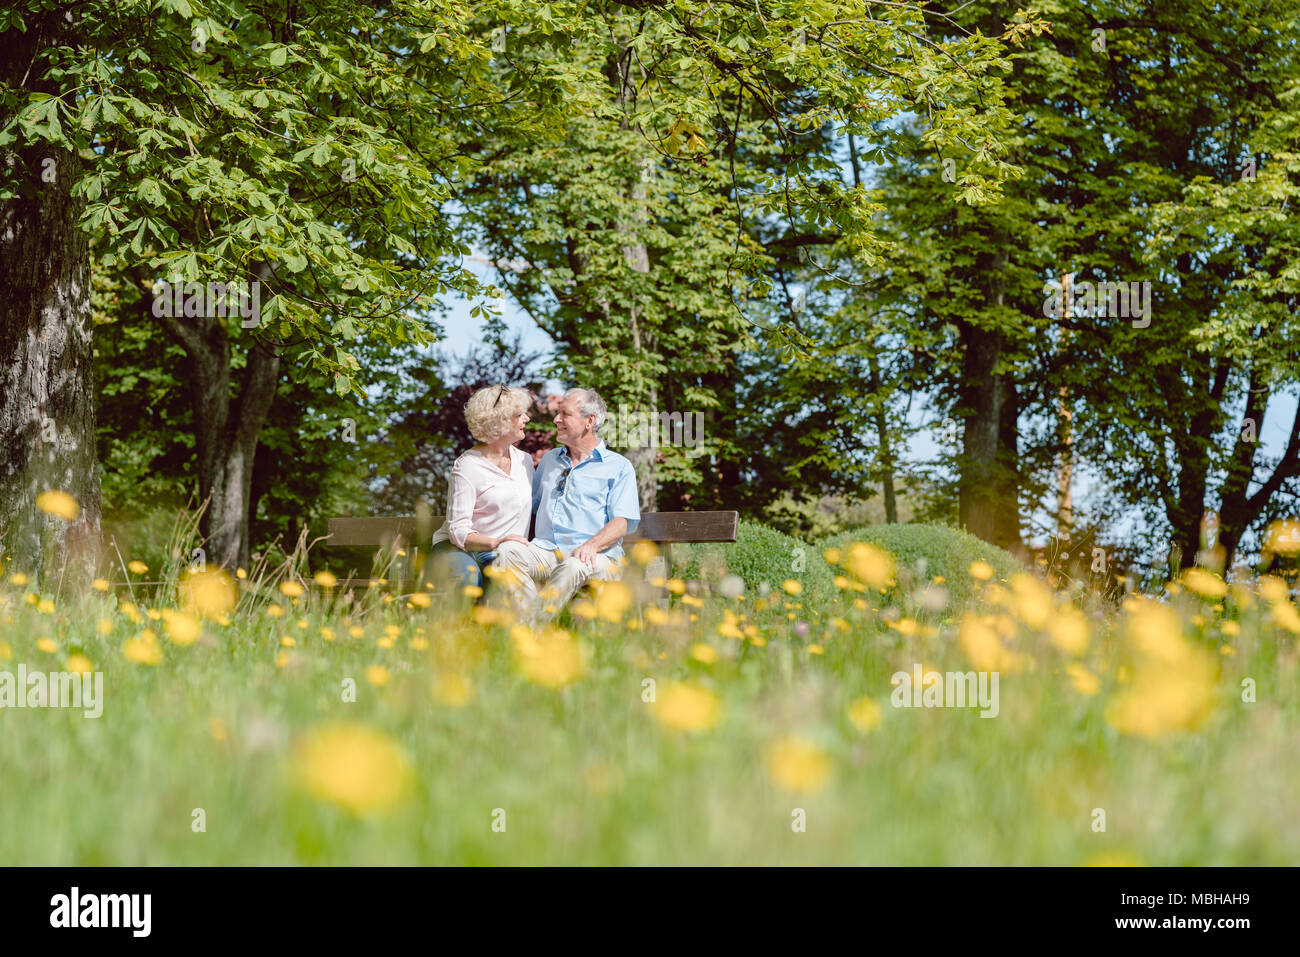 Romantic senior couple in love dating en plein air dans un parc idyllique Photo Stock